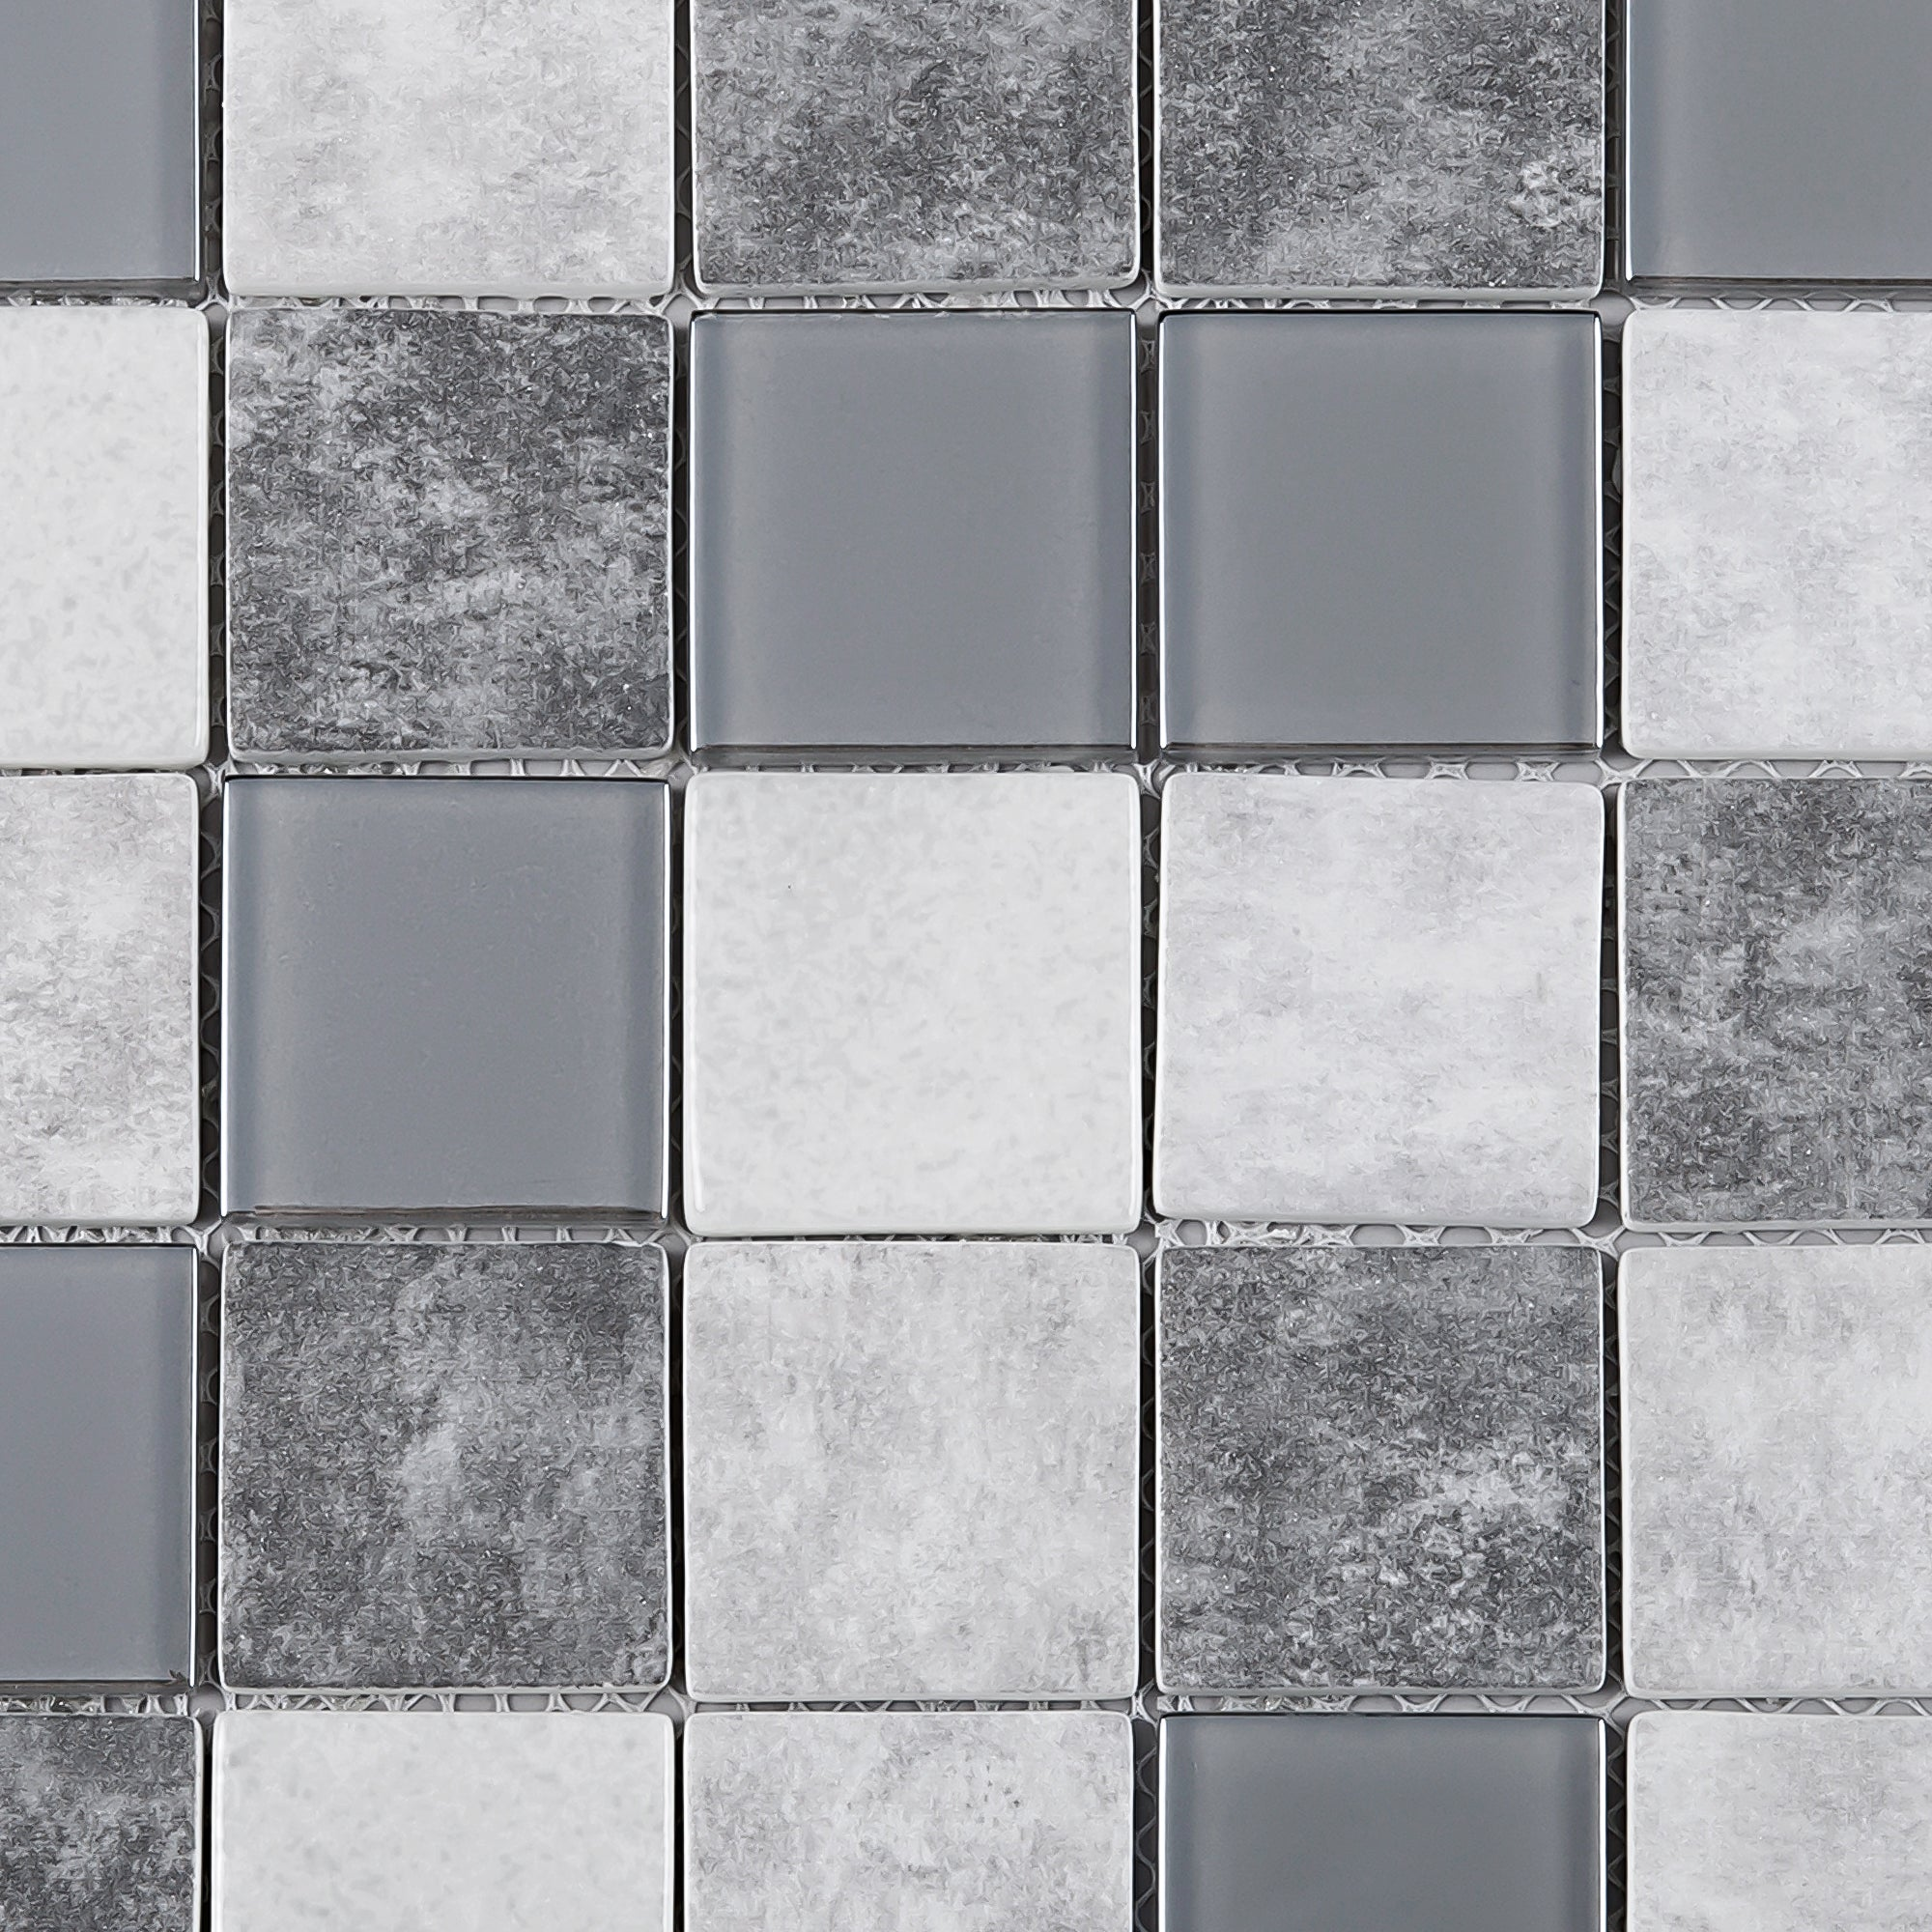 - TREGLG-02 Grey 2x2 Grid Recycle Glass Mosaic Tile Sheet Backsplash